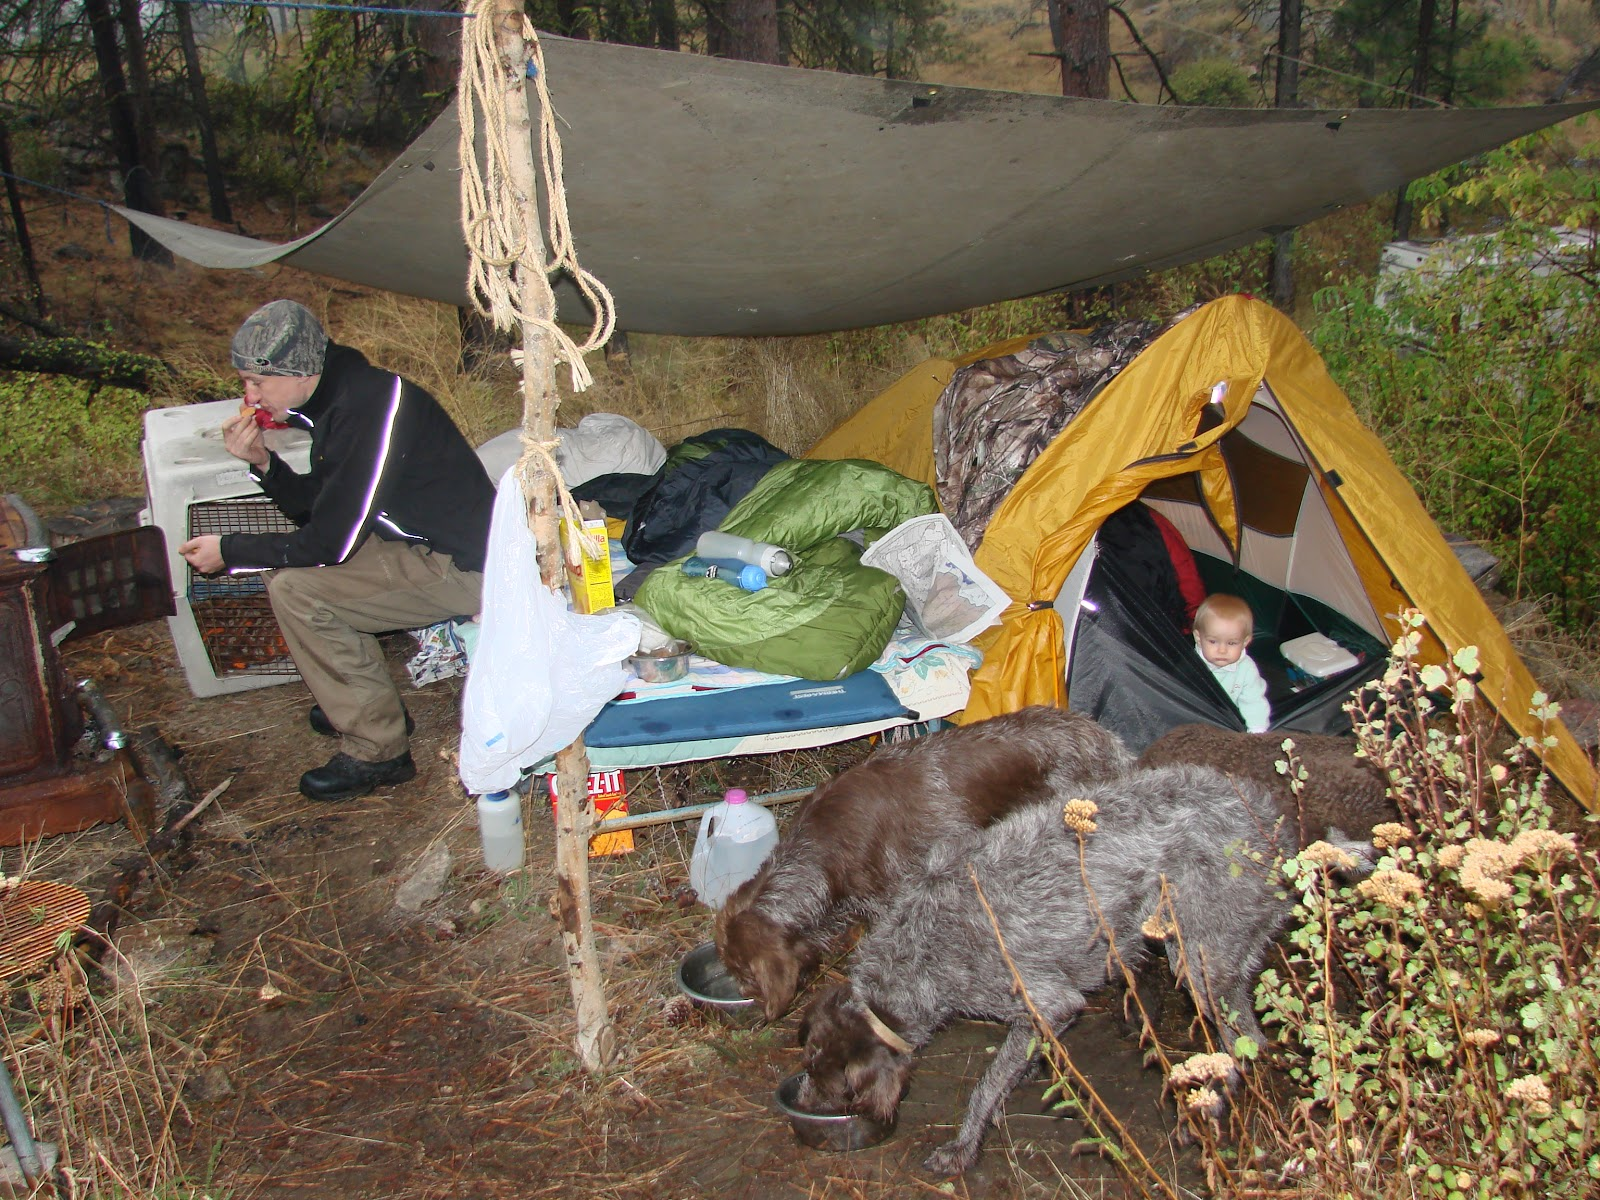 Post child as you can see little Maddy peaking from the tent at 9 months & R-Dub Outdoors: Tents Vs. Tarps